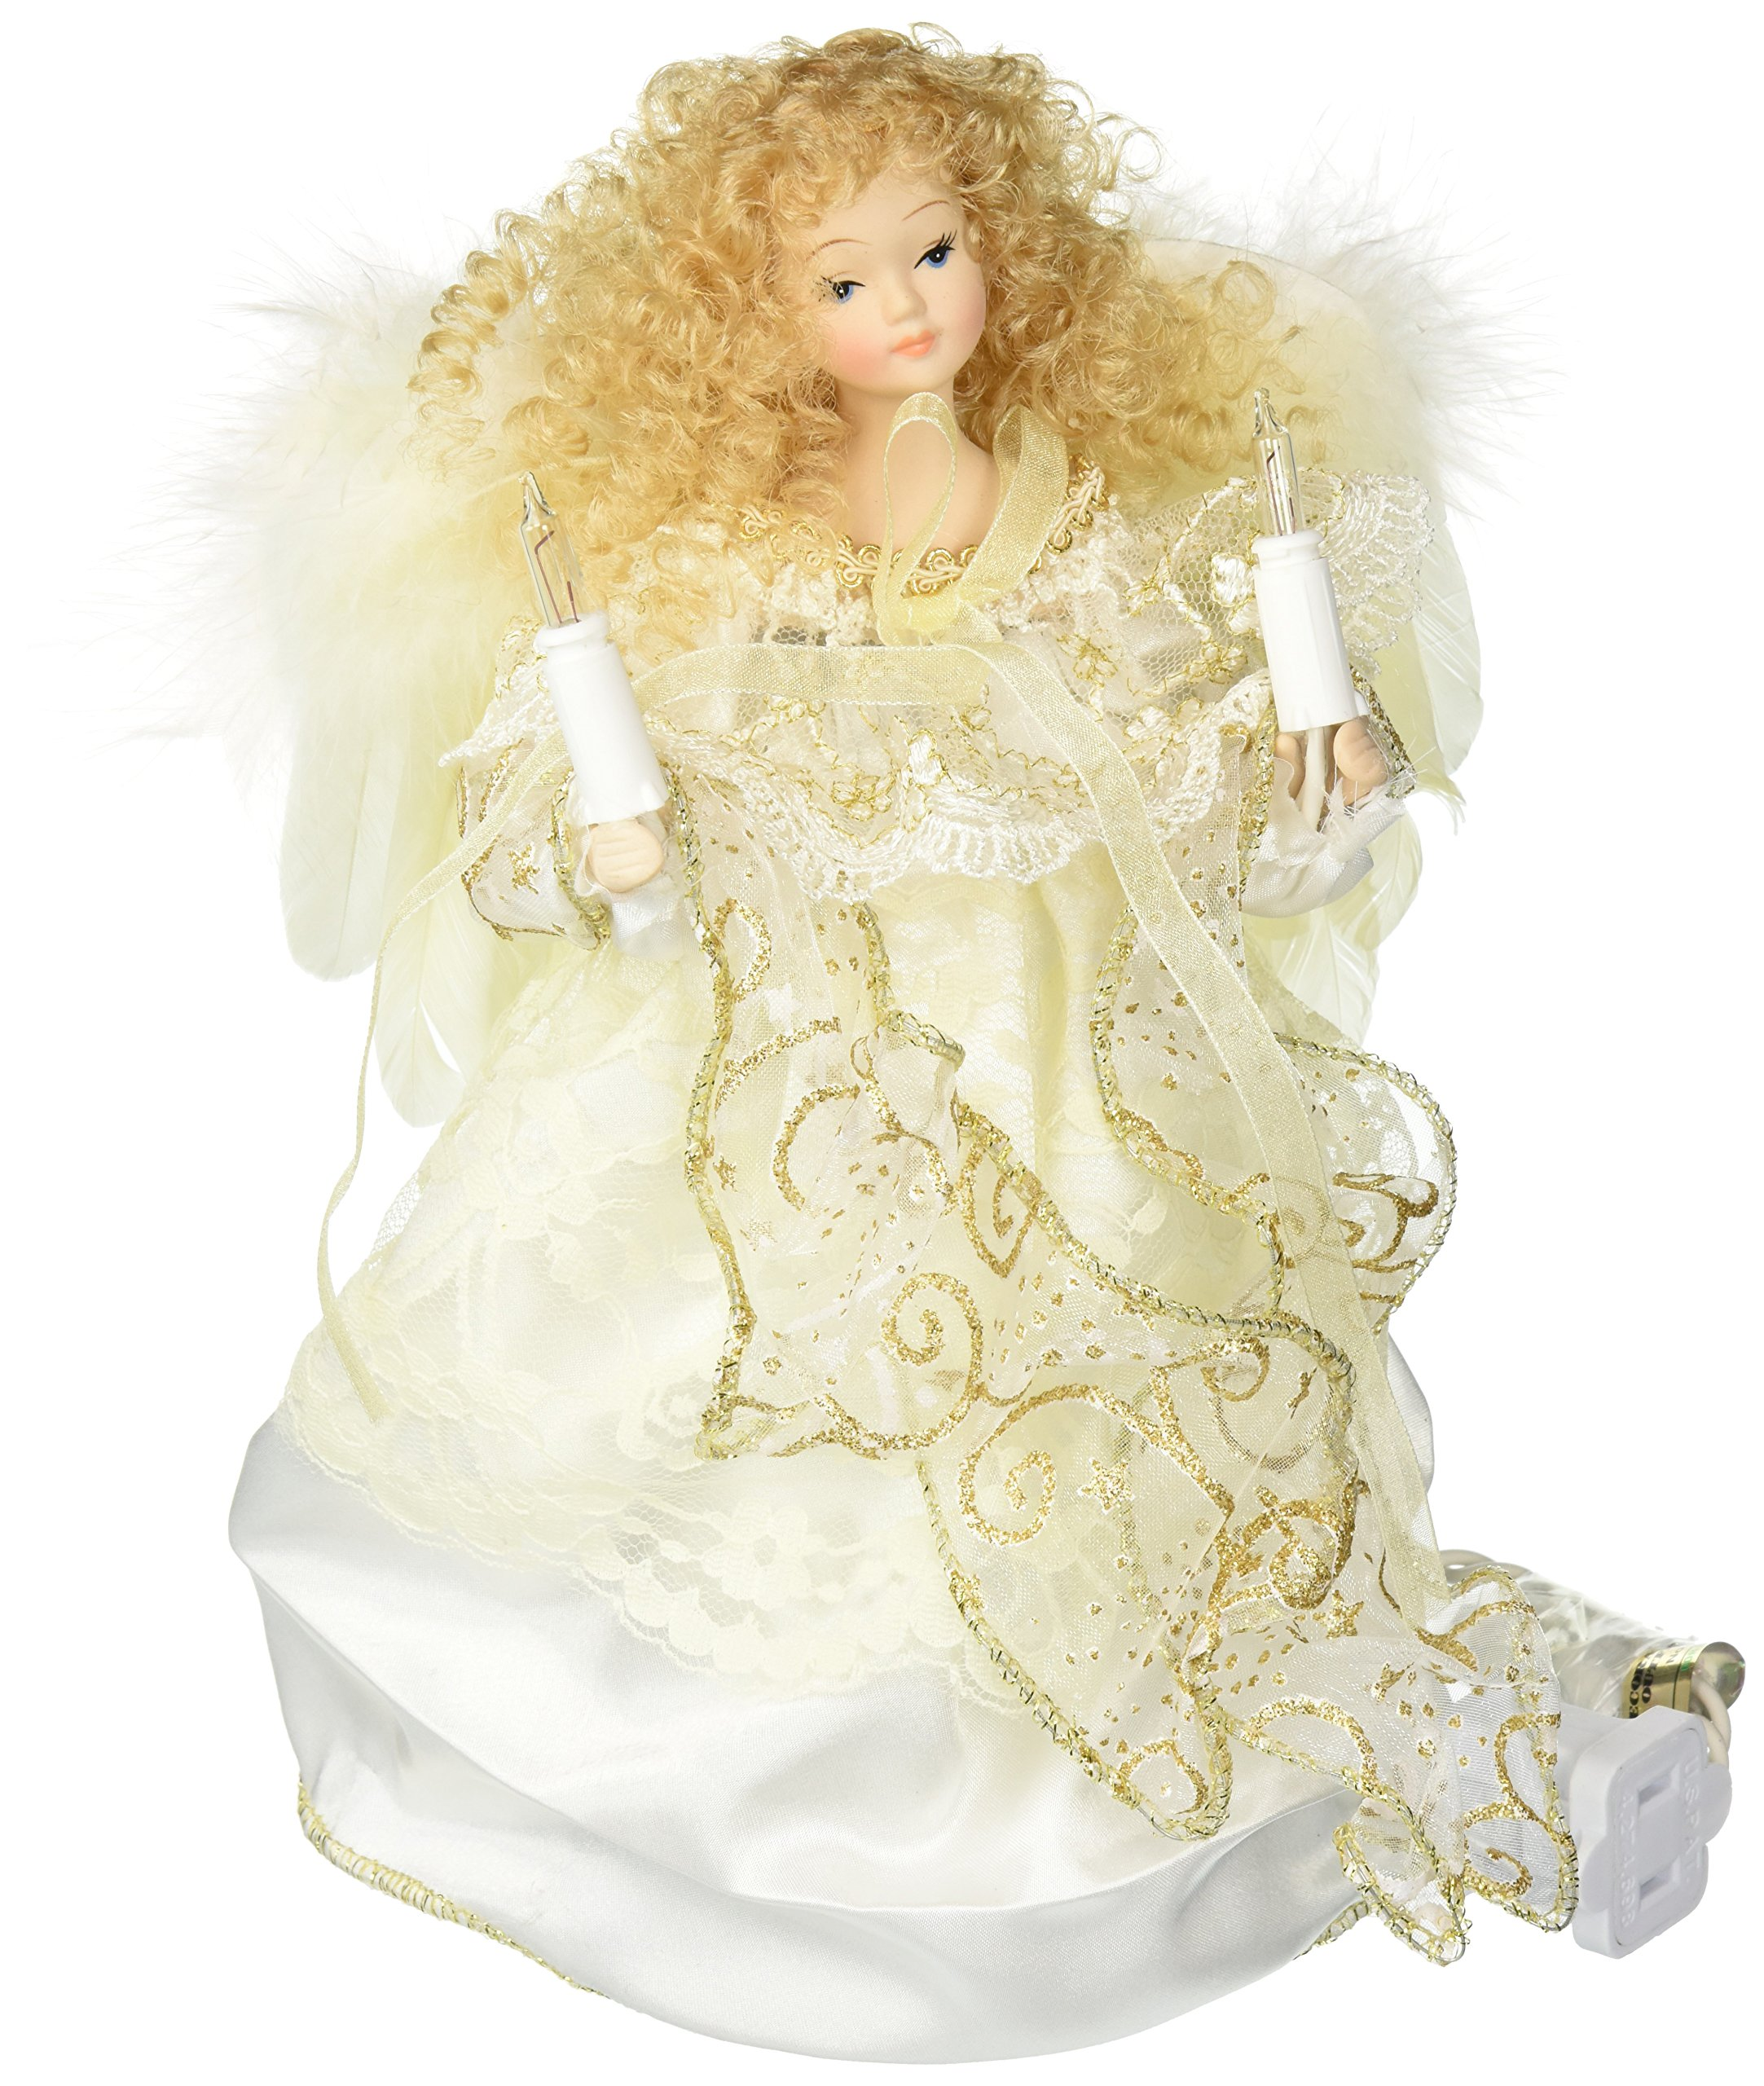 Kurt Adler 10-Light Angel Christmas Treetop Figurine, 9-Inch, Ivory and Gold